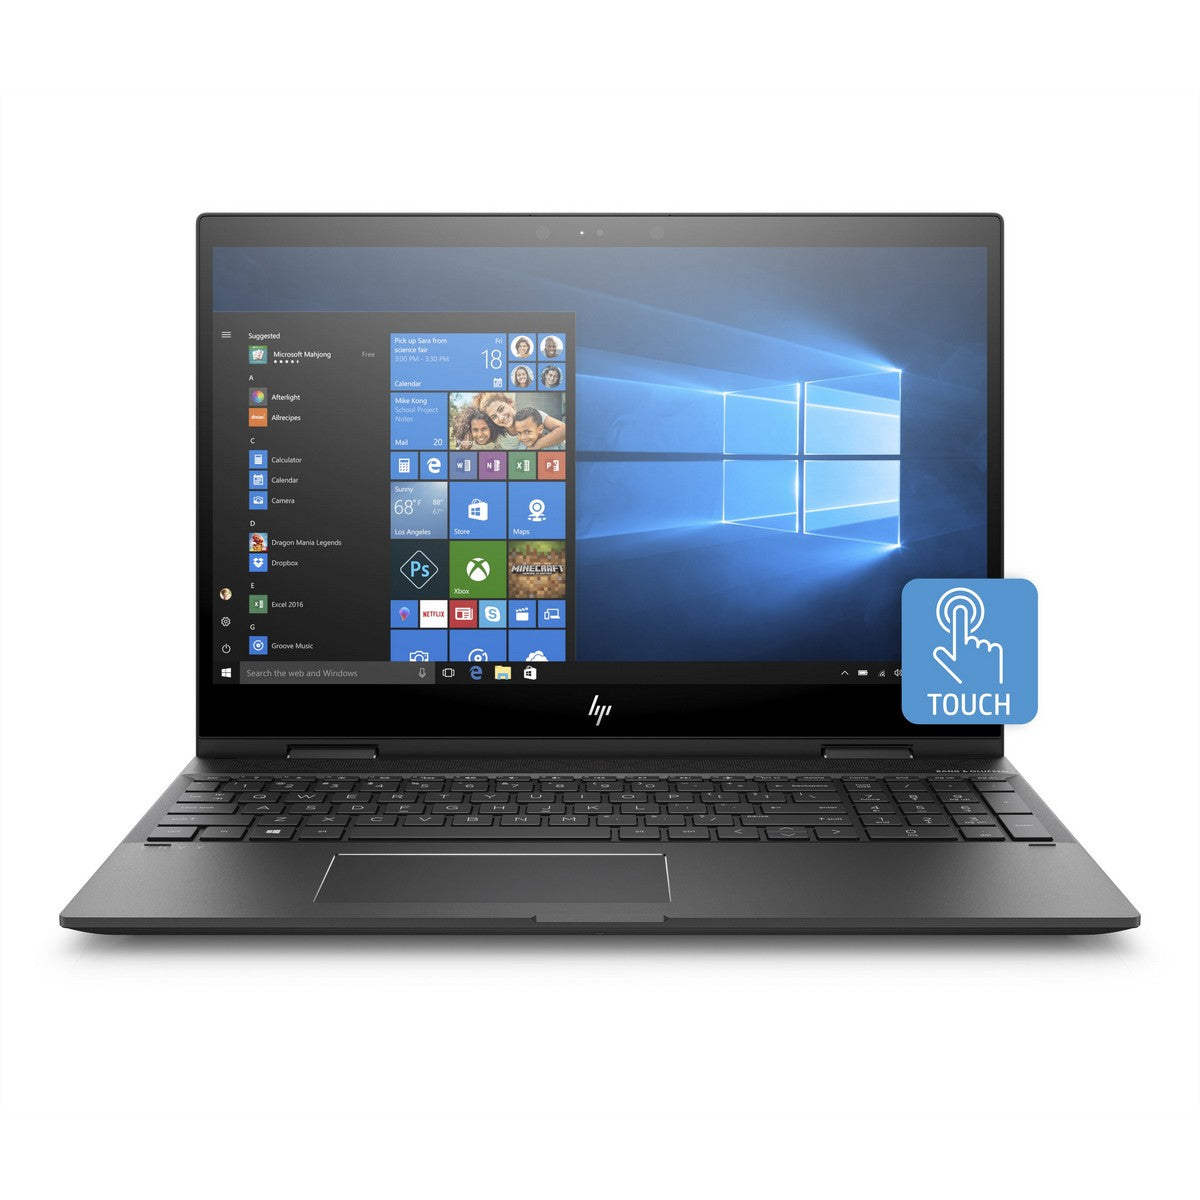 HP Envy 15m-cp0011dx X360 2 in 1 Laptop 15.6'' FHD IPS , Amd Ryzen 5 Ryzen™ 5 2500U 2.0GHz up to 3.6GHz 6MB cache, 8GB RAM, AMD Radeon 8GB GPU, 128GB SSD, Touchscreen, Windows 10, English Keyboard, Dark ash silver